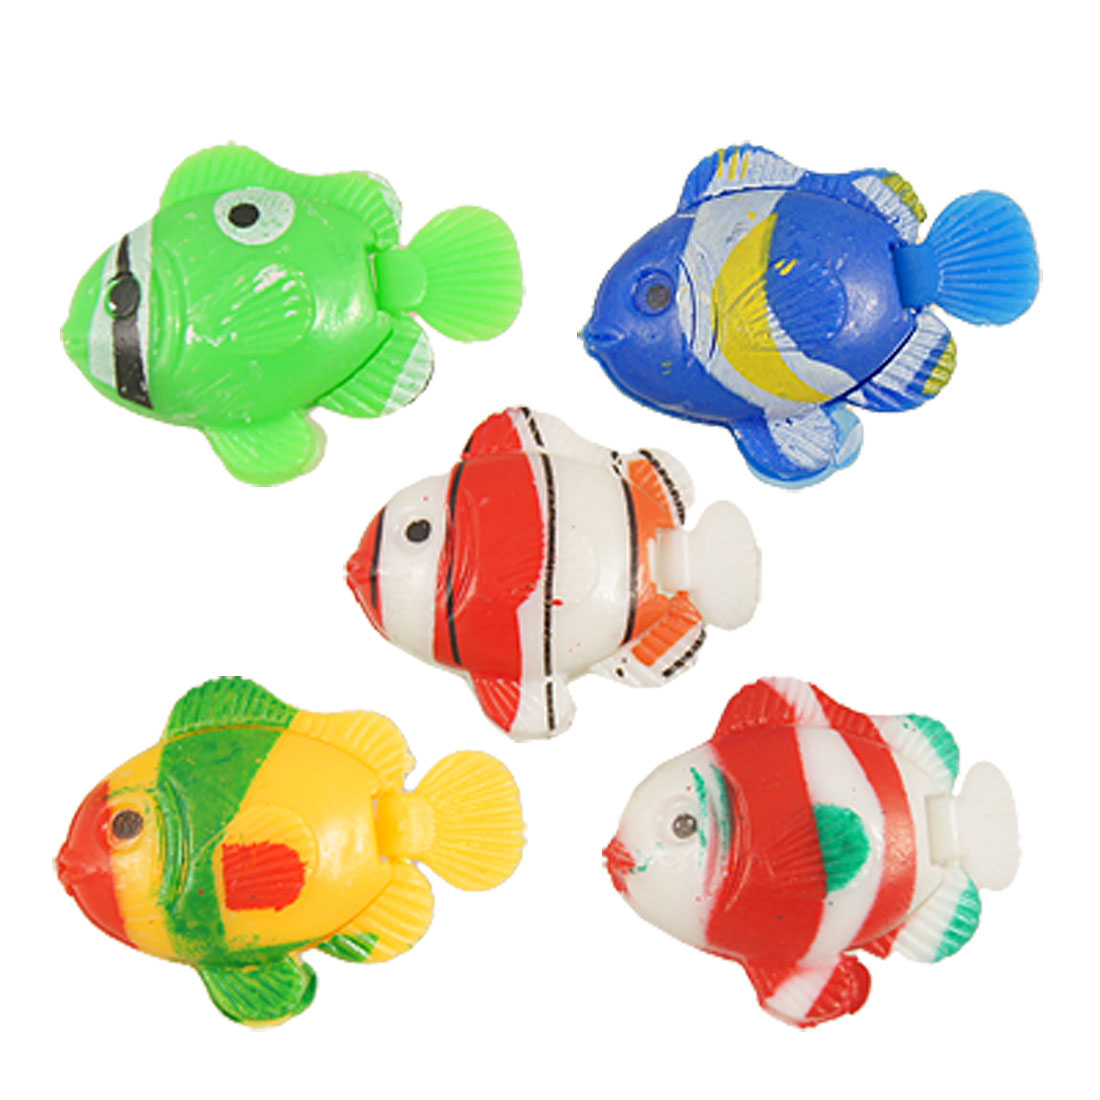 Vivid Artificial Swimming Wiggly Tail Fish for Aquarium 5 Pcs